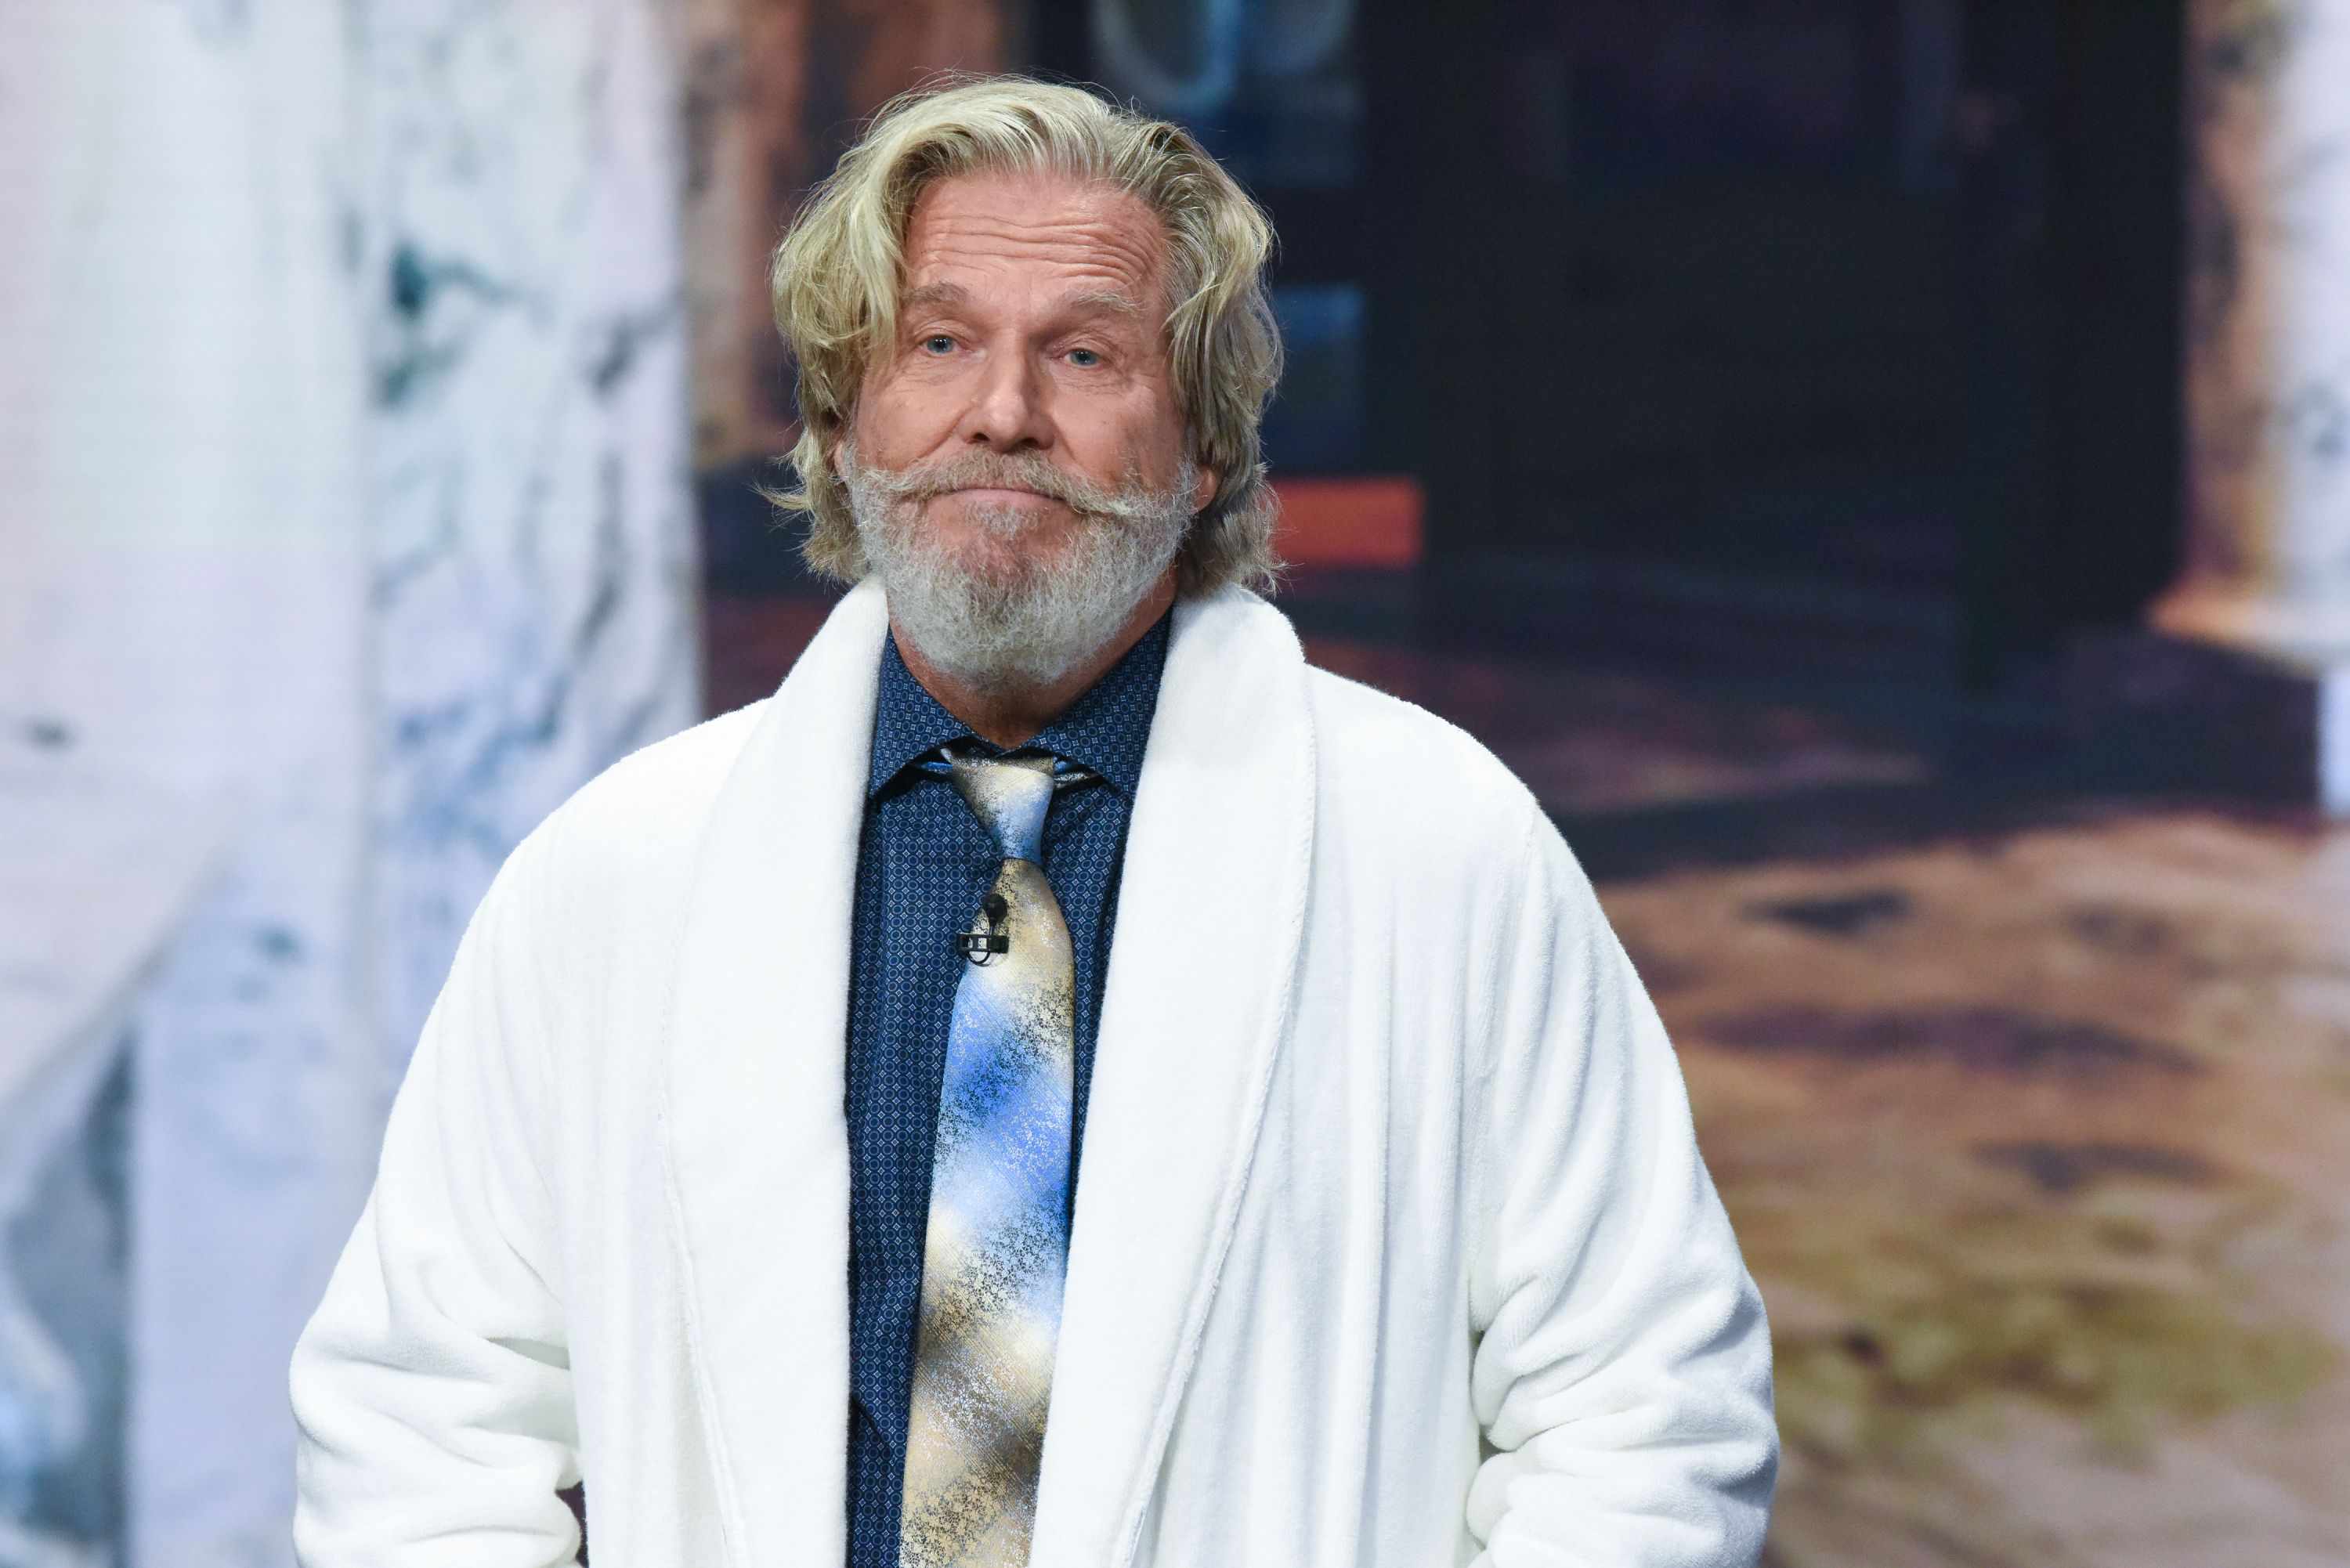 """Jeff Bridges as a guest on """"The Late Show with Stephen Colbert"""" on September 28, 2018 